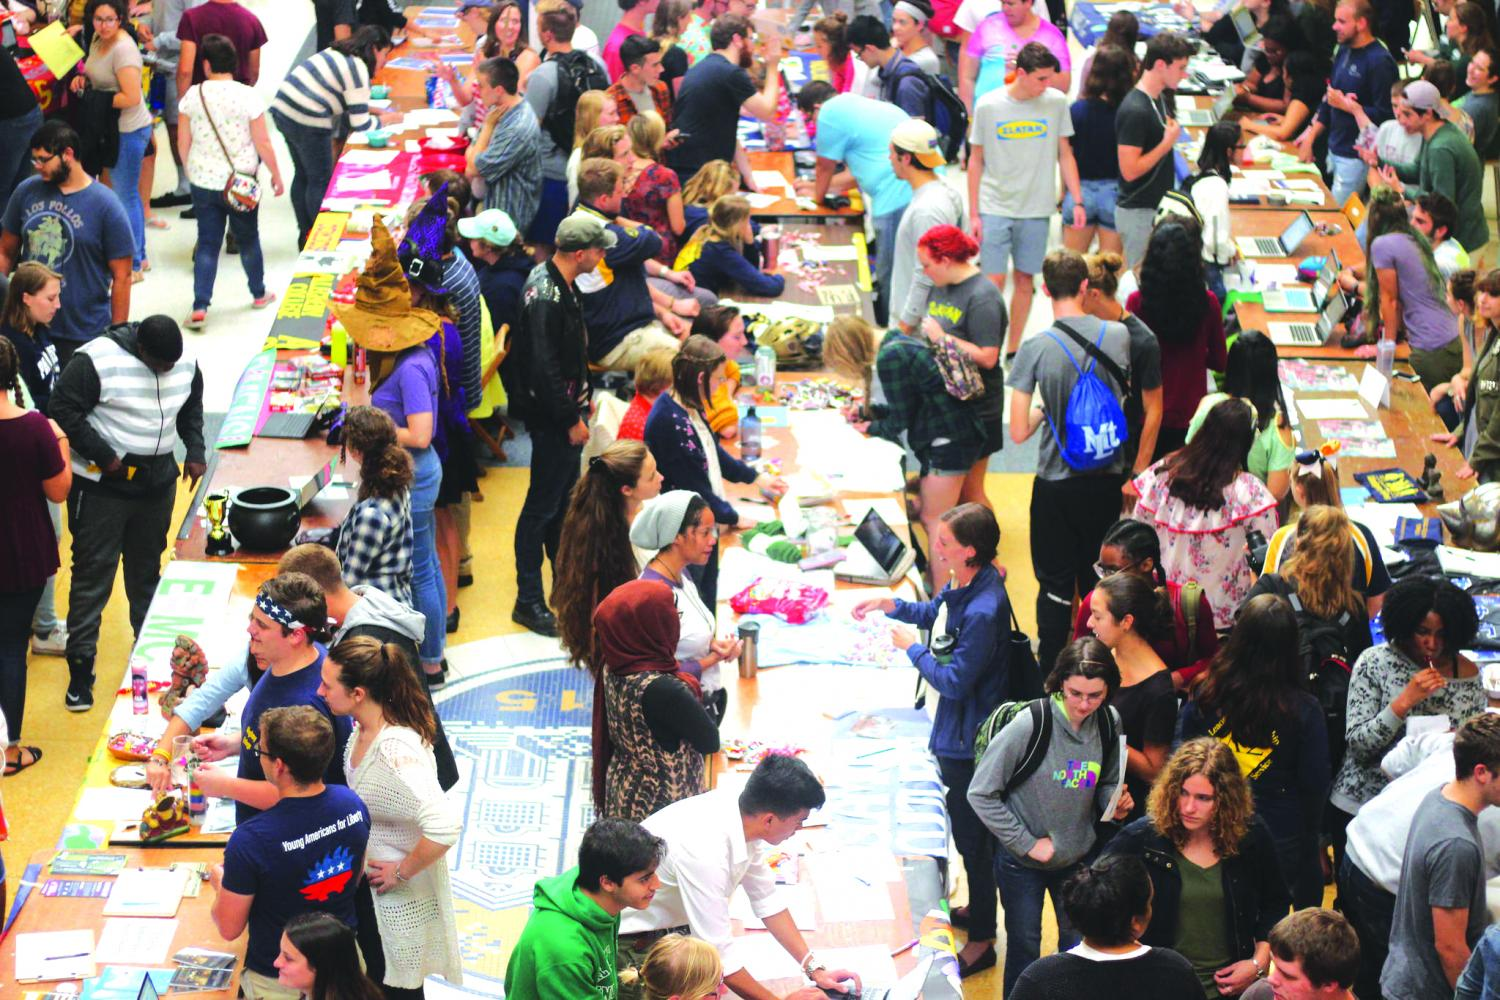 Allegheny students wander the campus center participating in the Student Involvement Fair. The event showcases the clubs and organizations on campus on Thursday, Aug. 31, 2017.